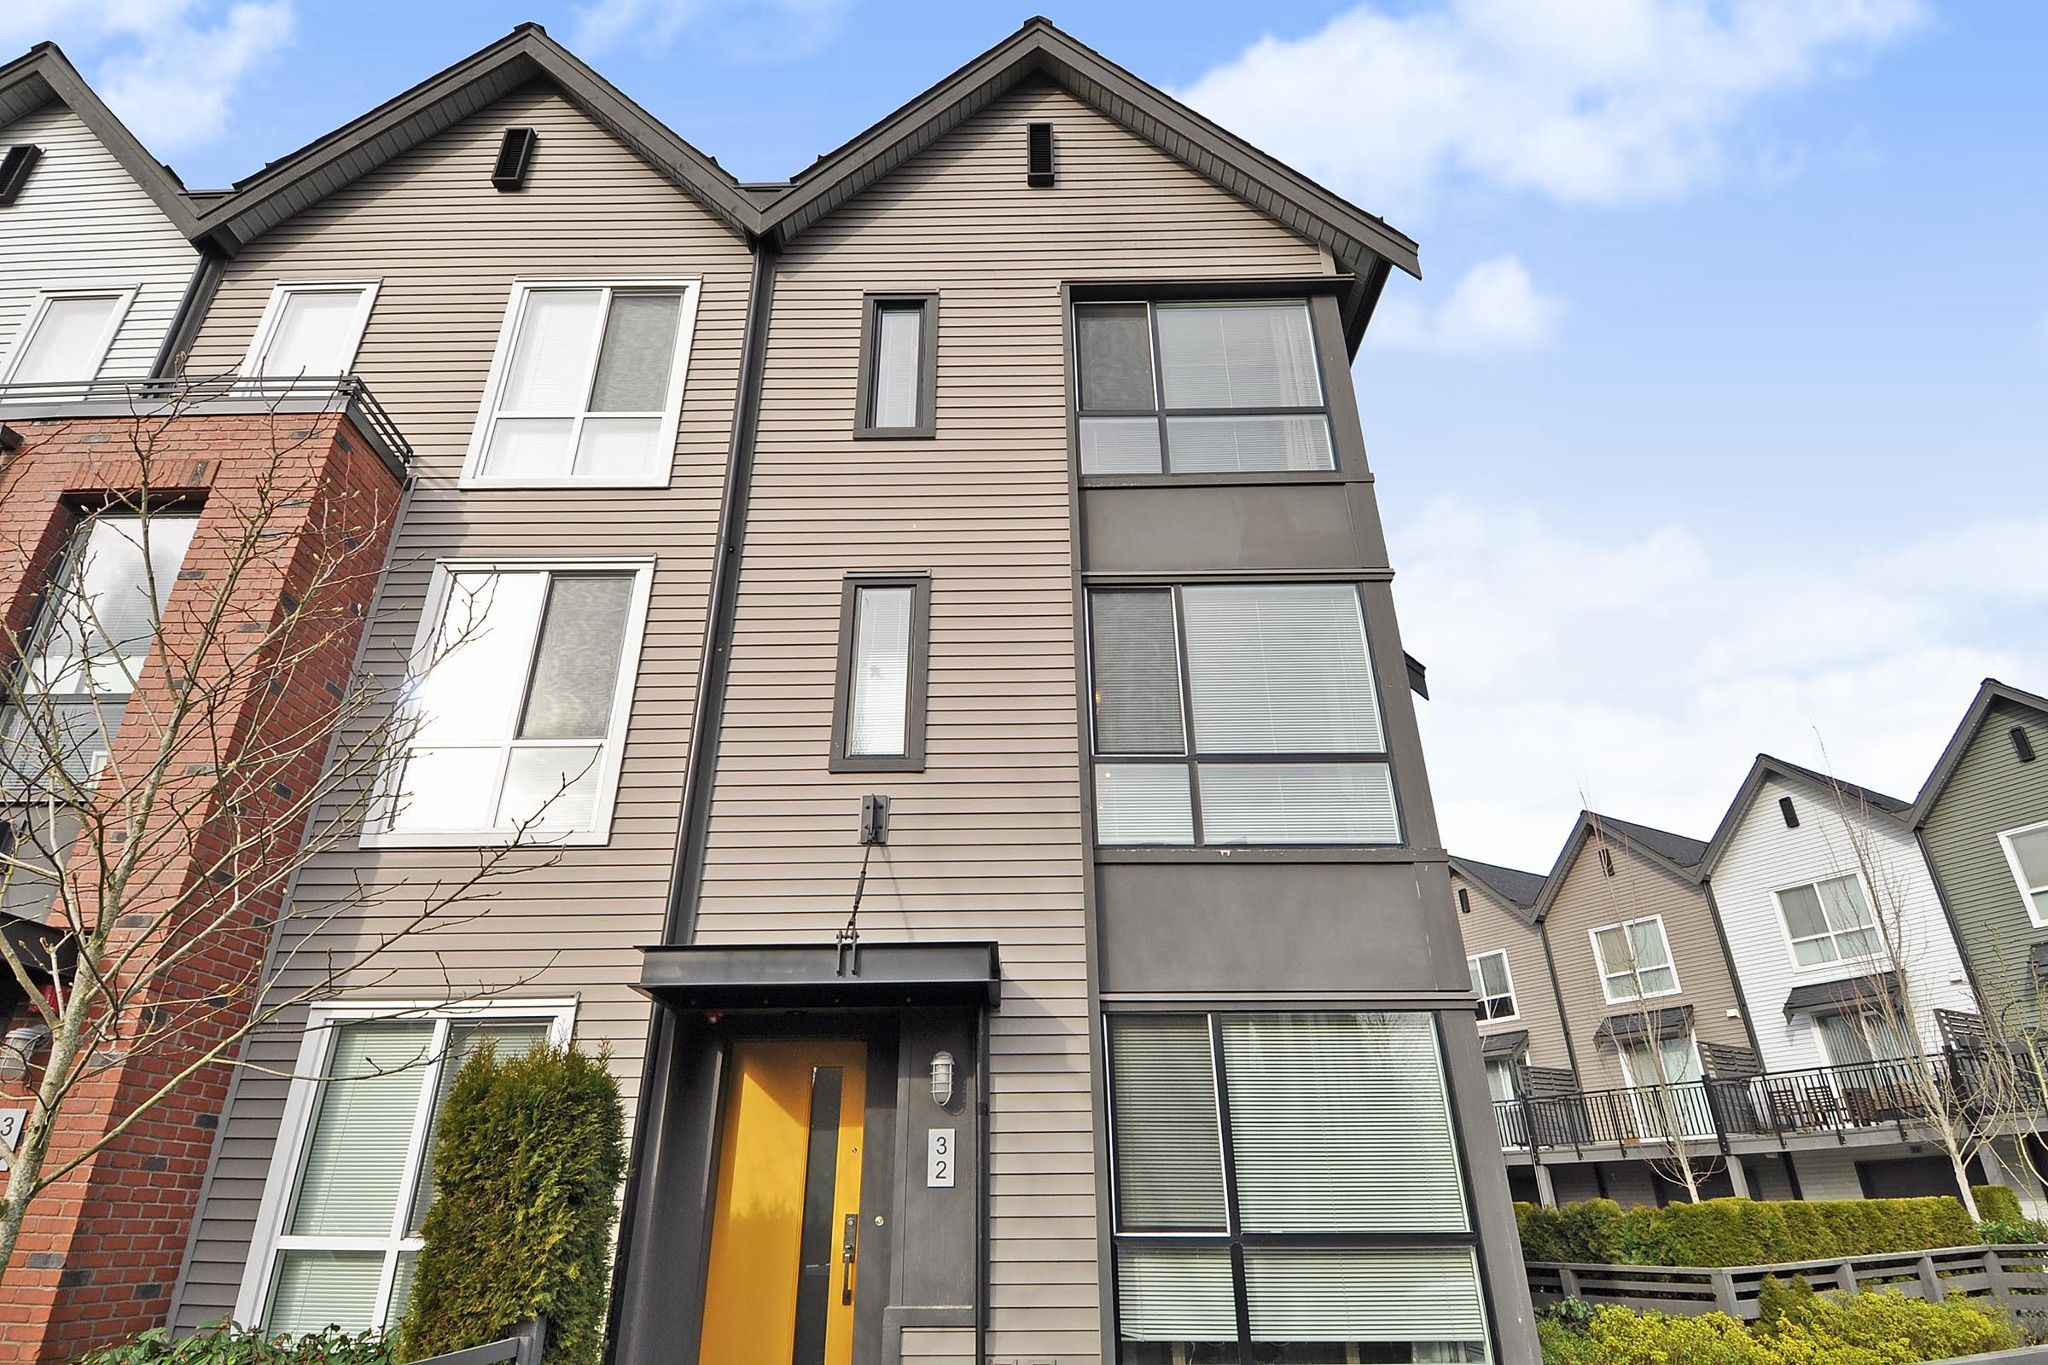 """Main Photo: 32 2325 RANGER Lane in Port Coquitlam: Riverwood Townhouse for sale in """"FREEMONT BLUE"""" : MLS®# R2431249"""